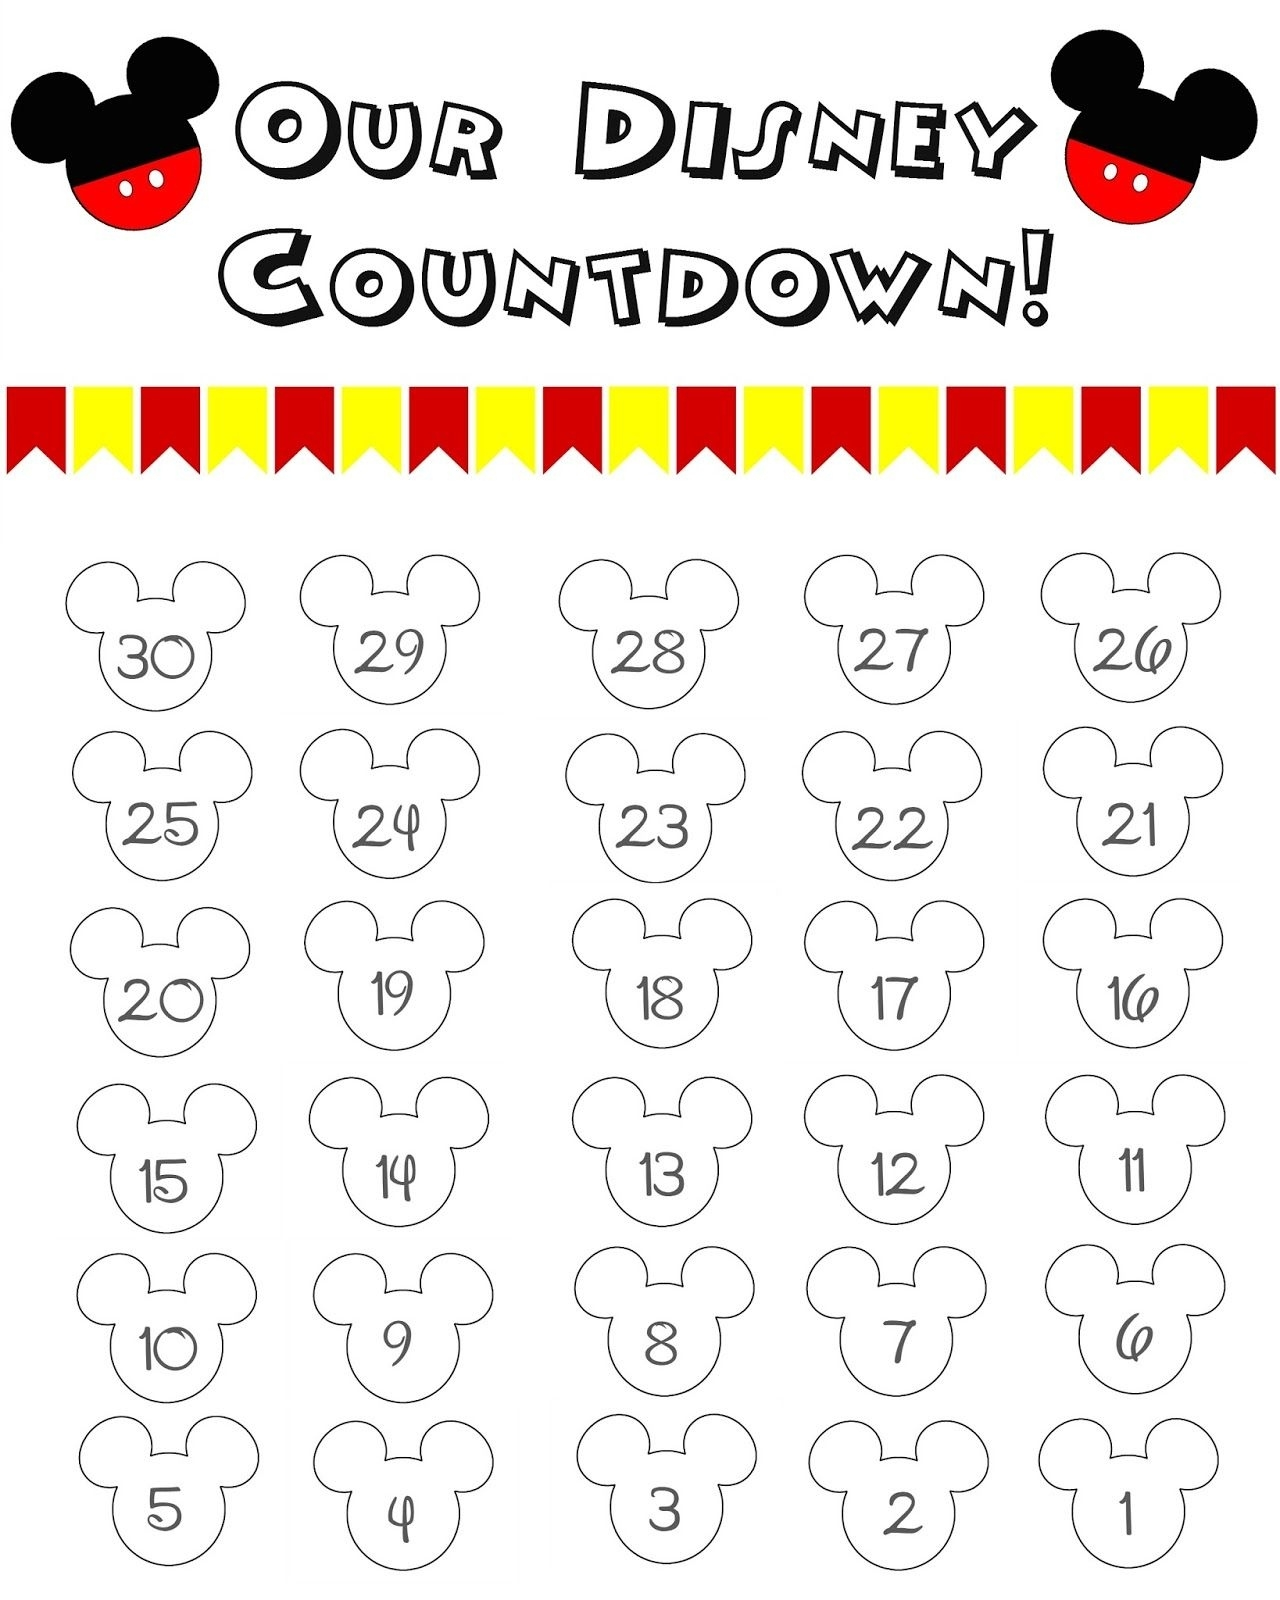 Disney World Countdown Calendar - Free Printable | Disney Printable Countdown To Disney Calendar